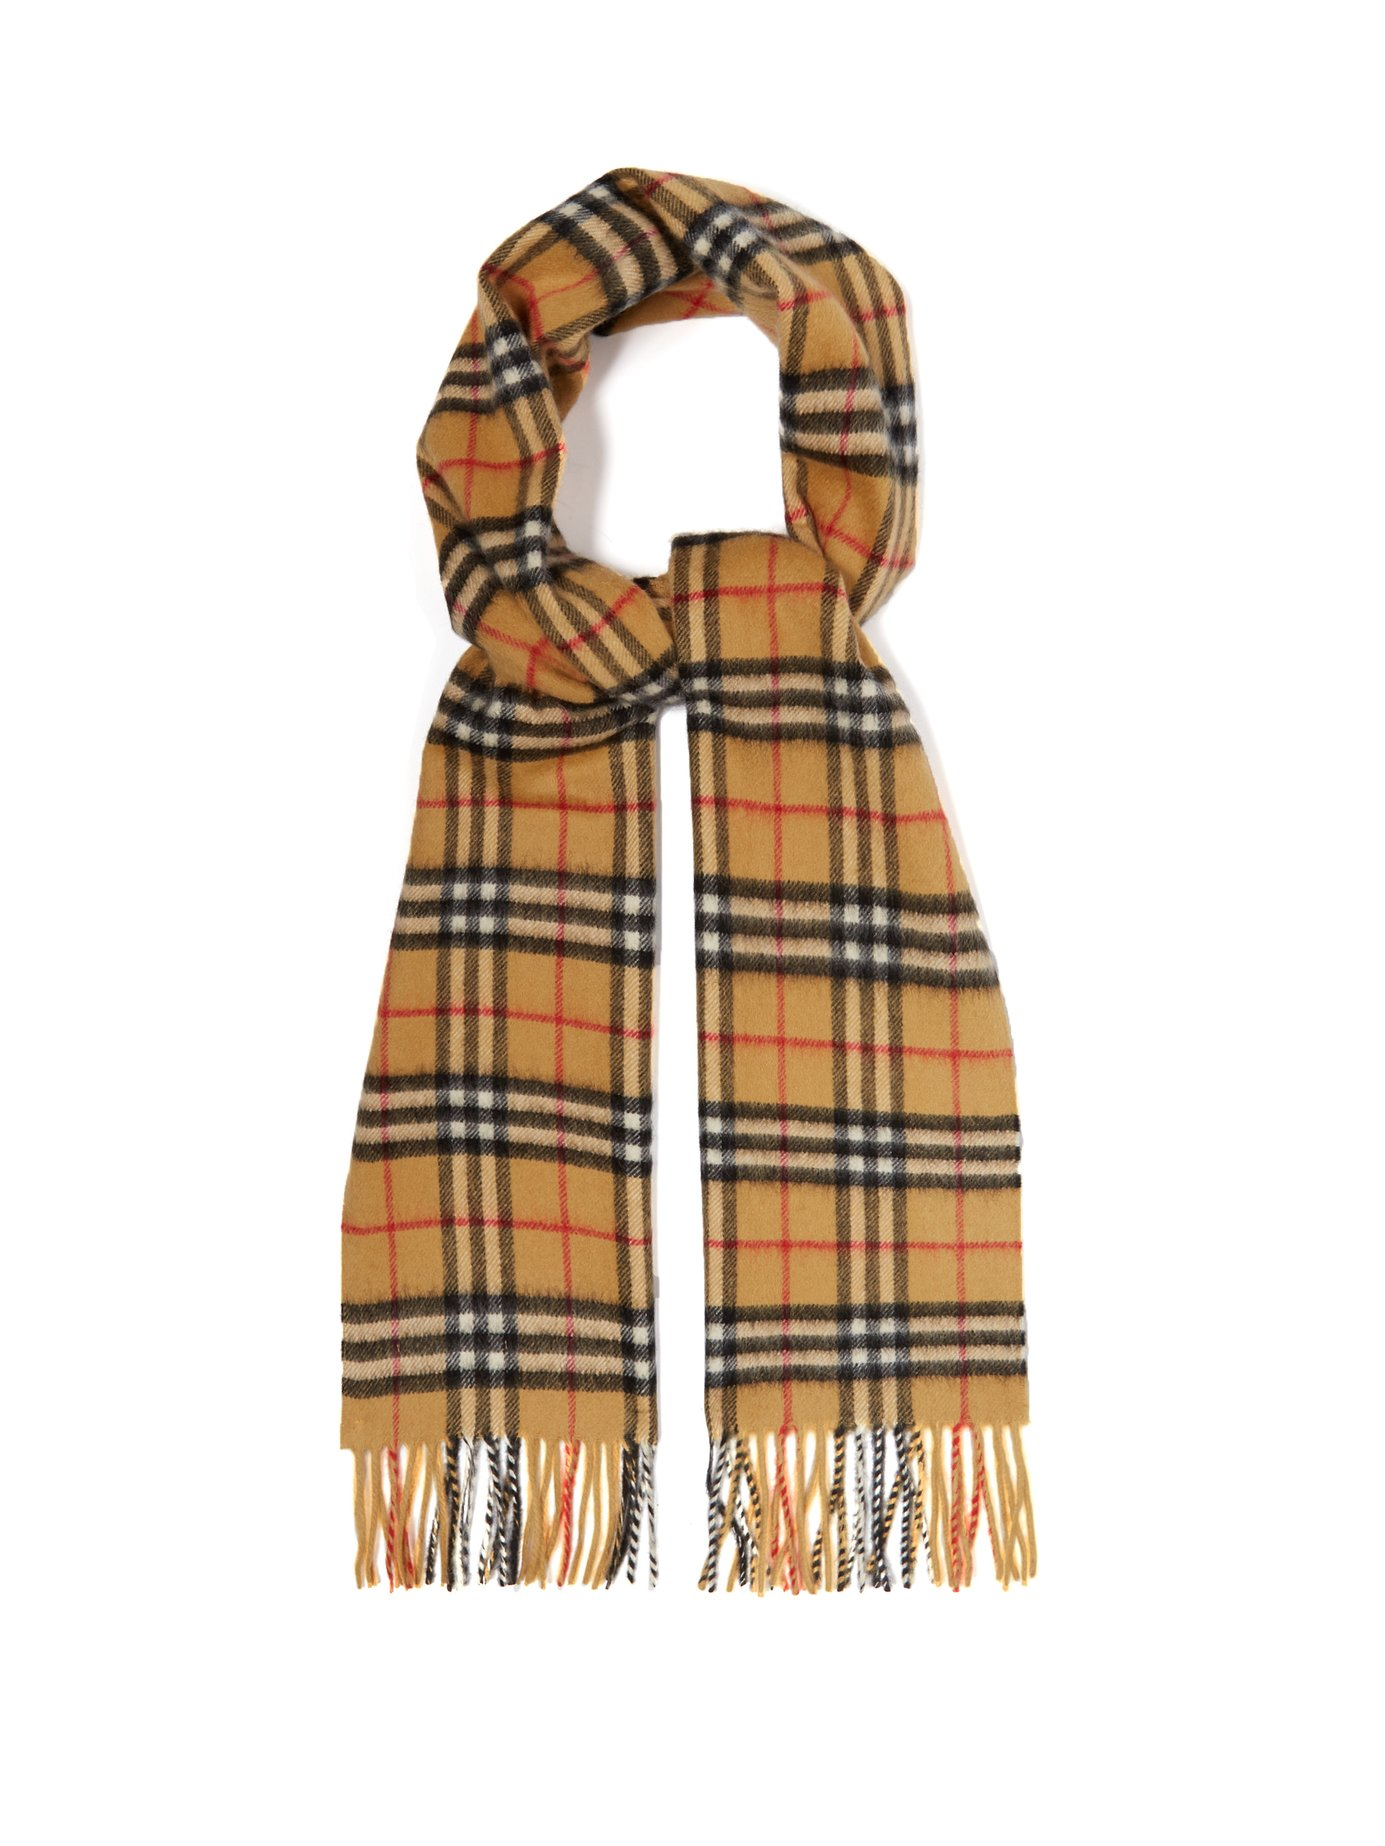 Vintage-check cashmere scarf - BURBERRY Reintroduced Vintage-check pattern from Burberry based on an archival print from the 1960s. It's constructed in Scotland to a generous size – it's finished with fringed ends. Buy it here